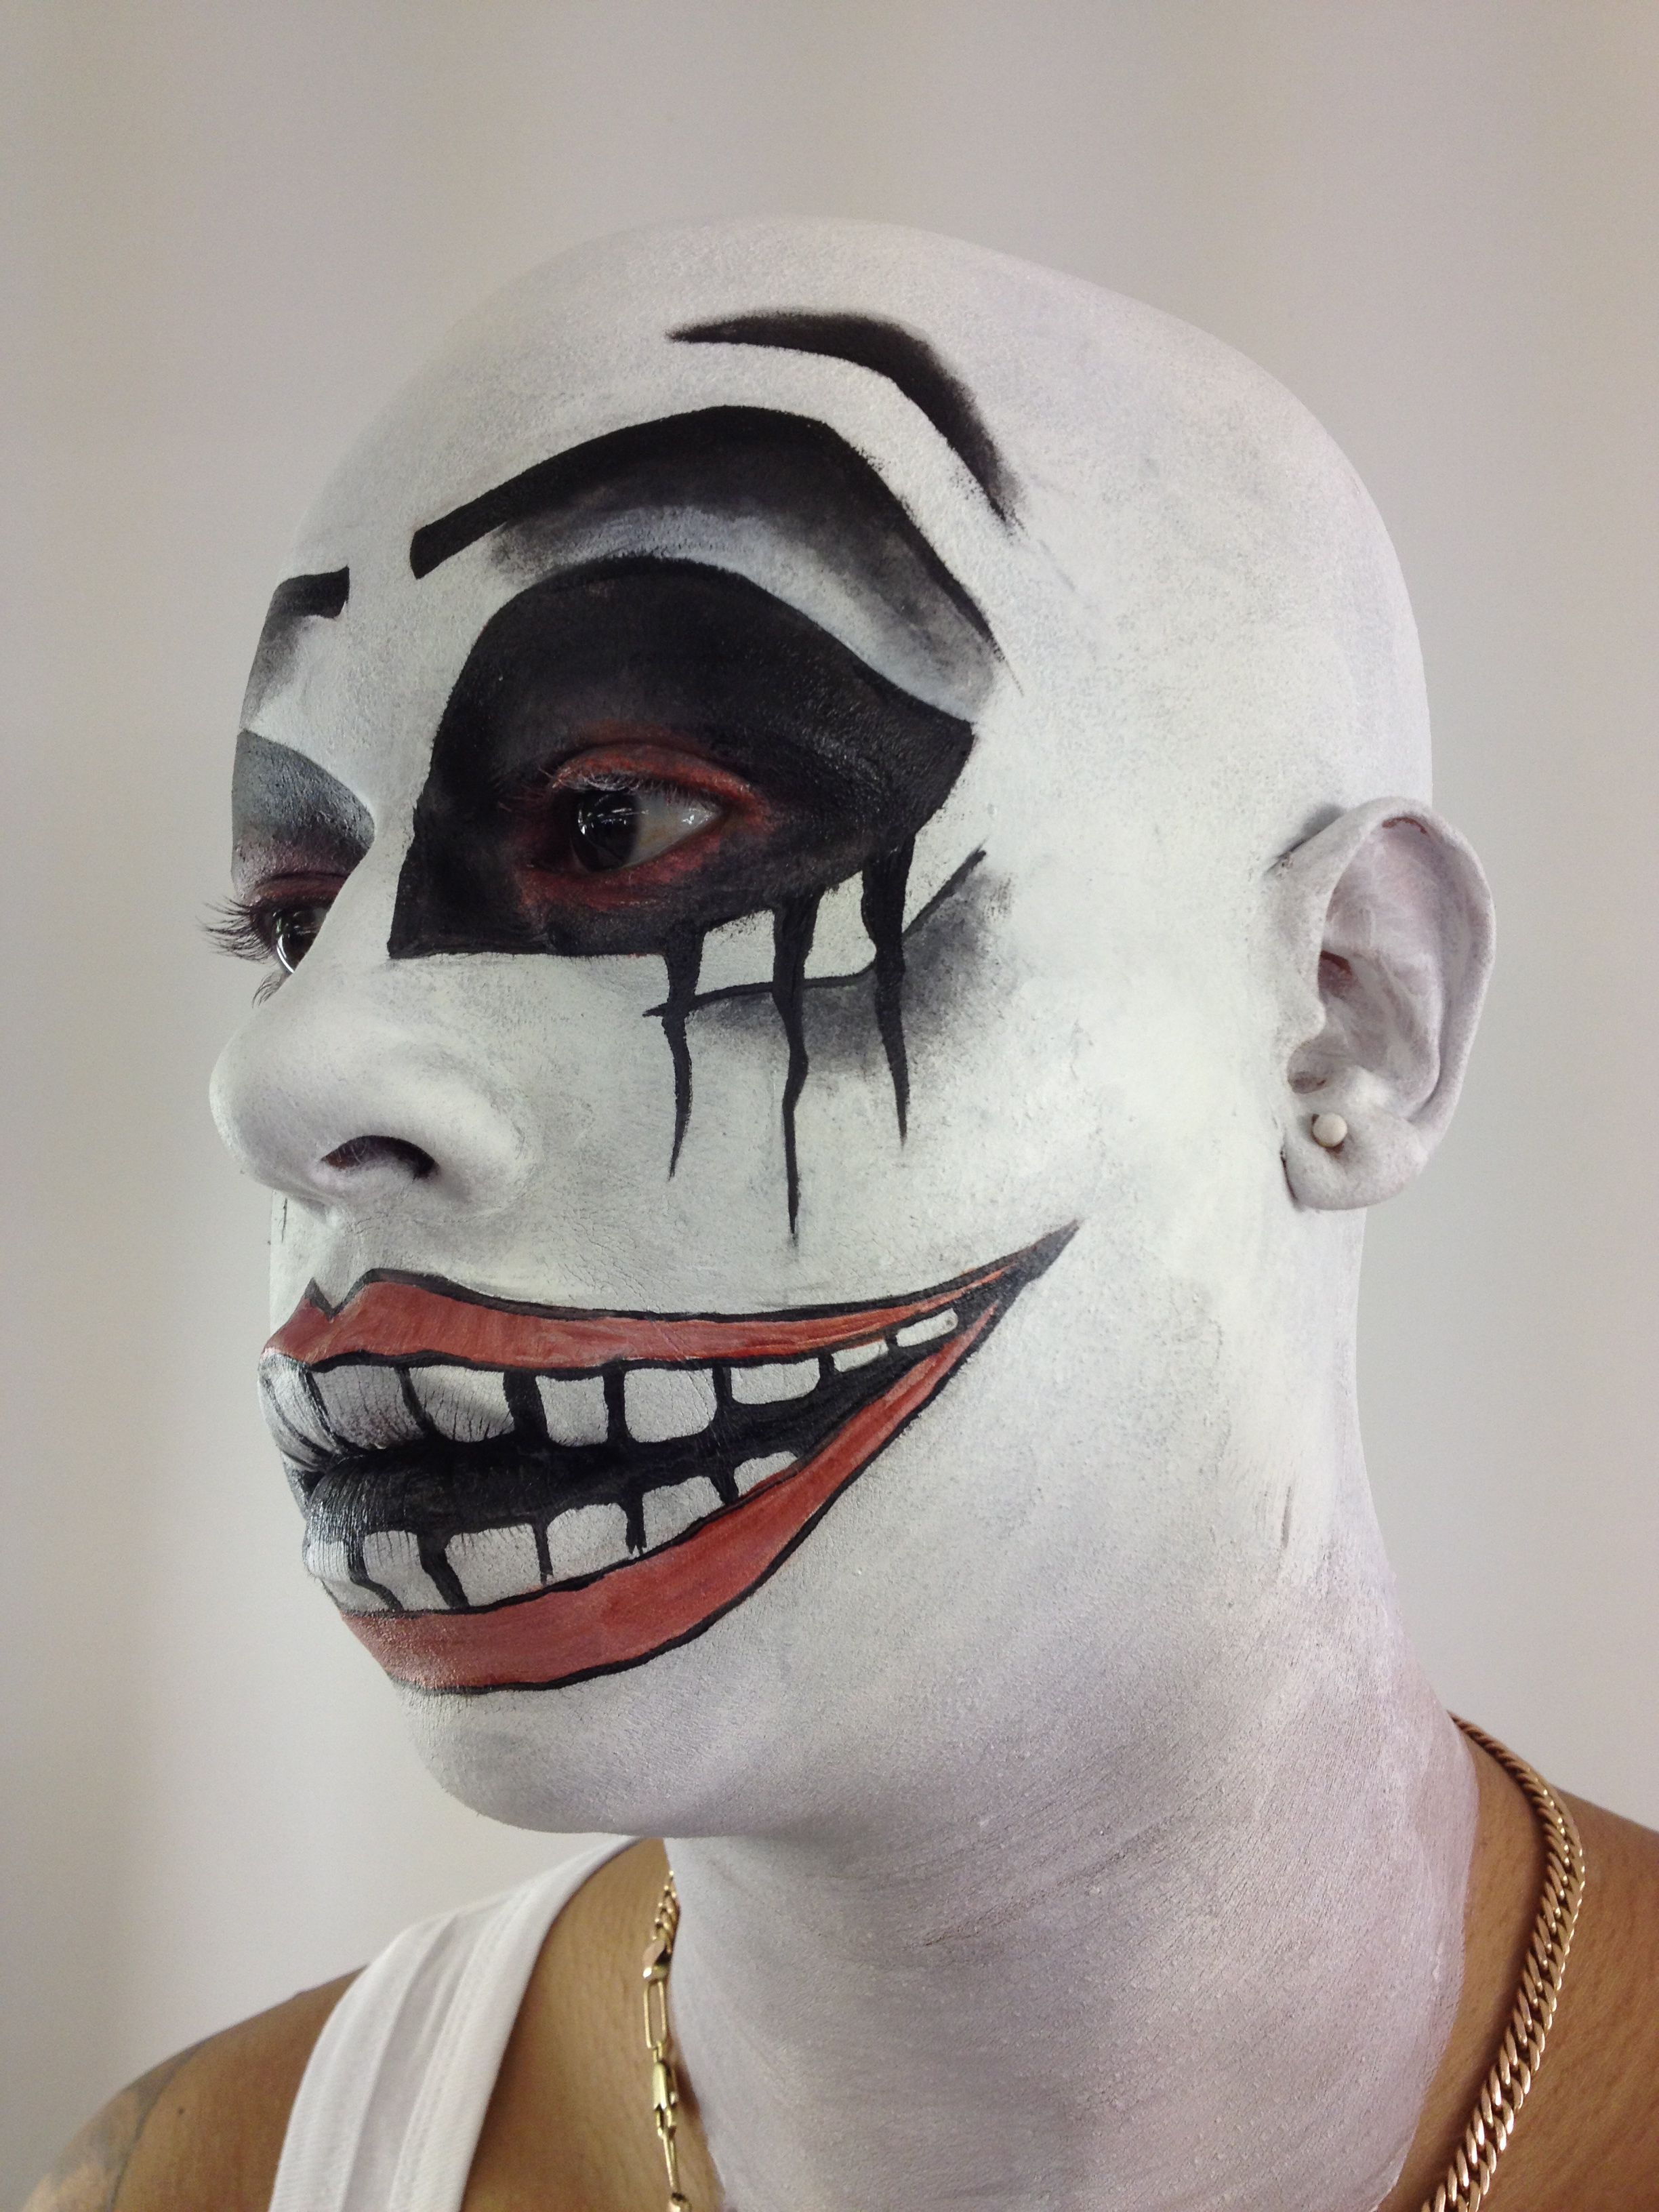 Done By Me. Bald cap and Clown Makeup project at school. Decided a ...